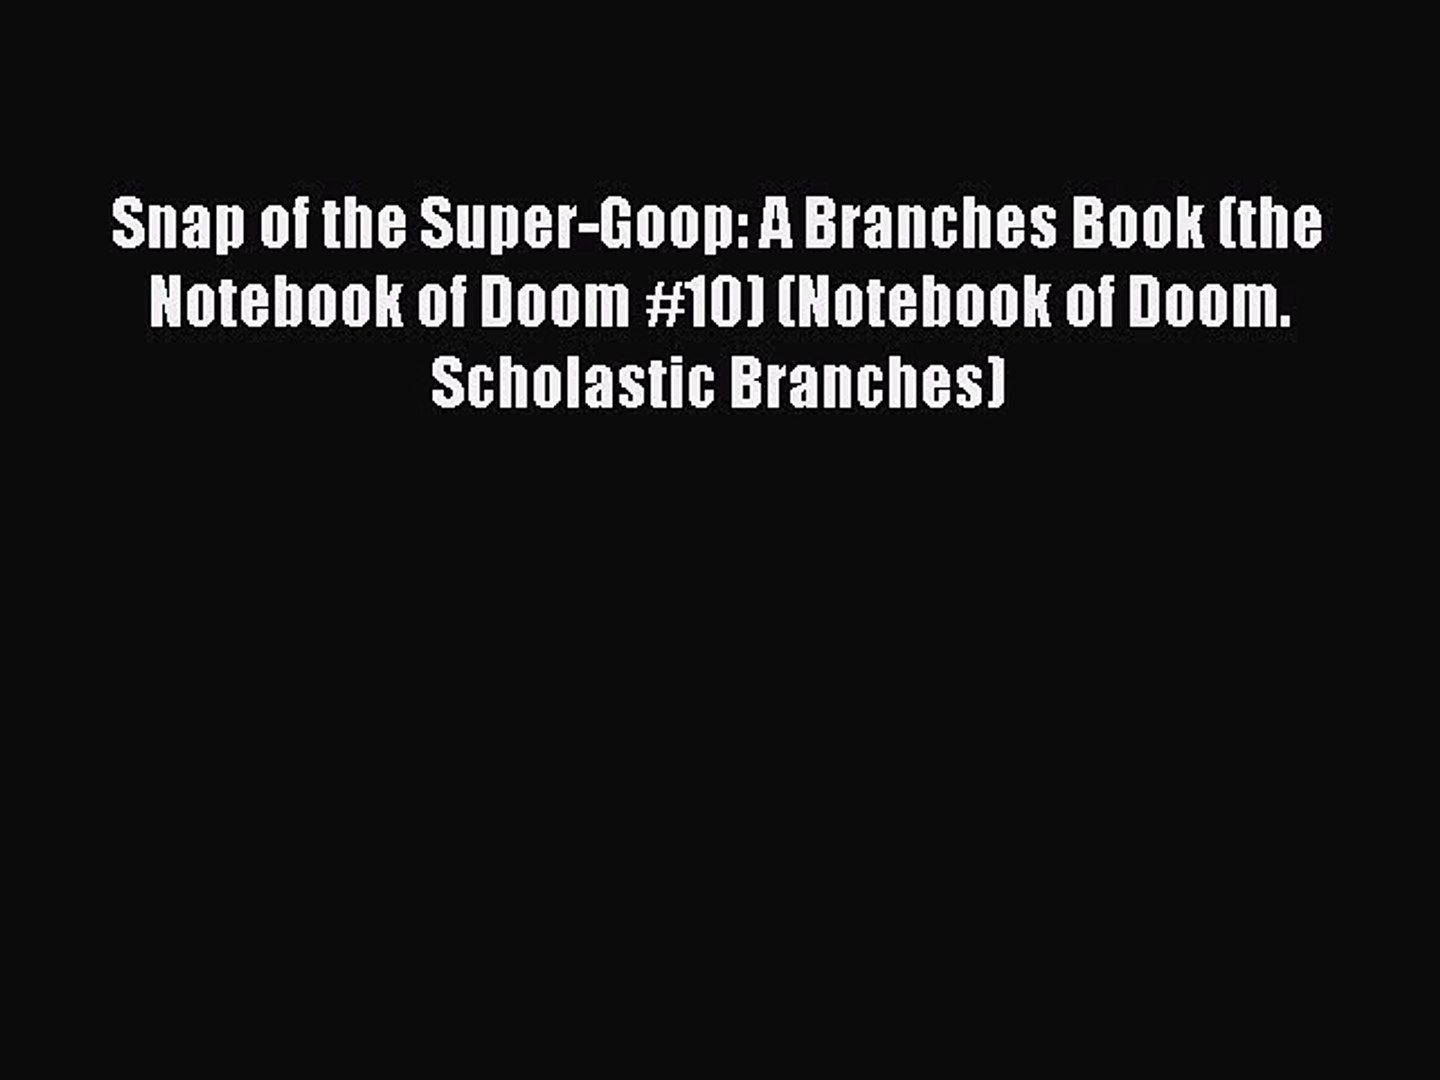 Read Snap of the Super-Goop: A Branches Book (the Notebook of Doom #10) (Notebook of Doom.